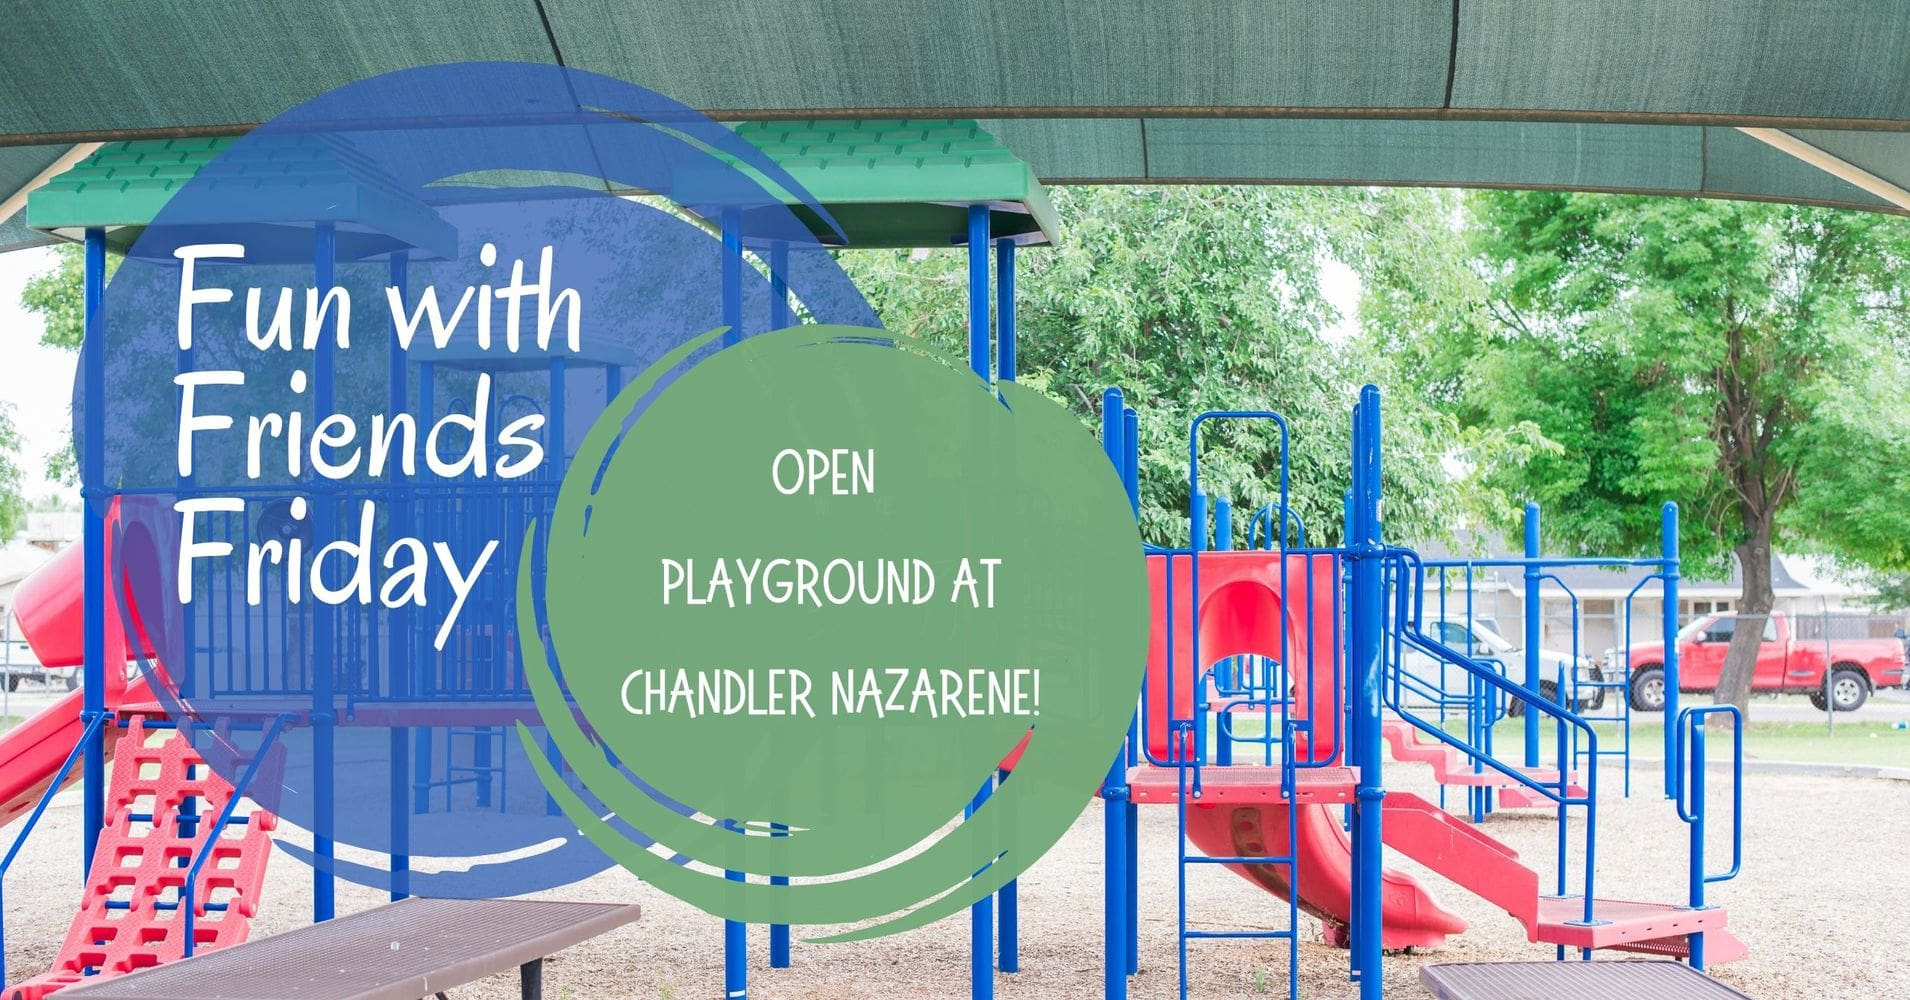 Open Playground at Chandler Nazarene